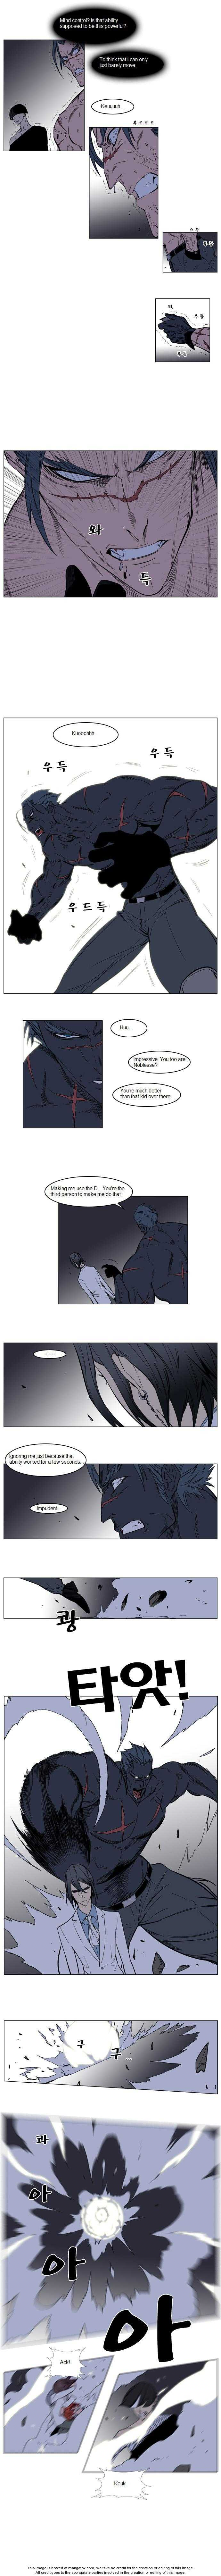 Noblesse 134 Page 3